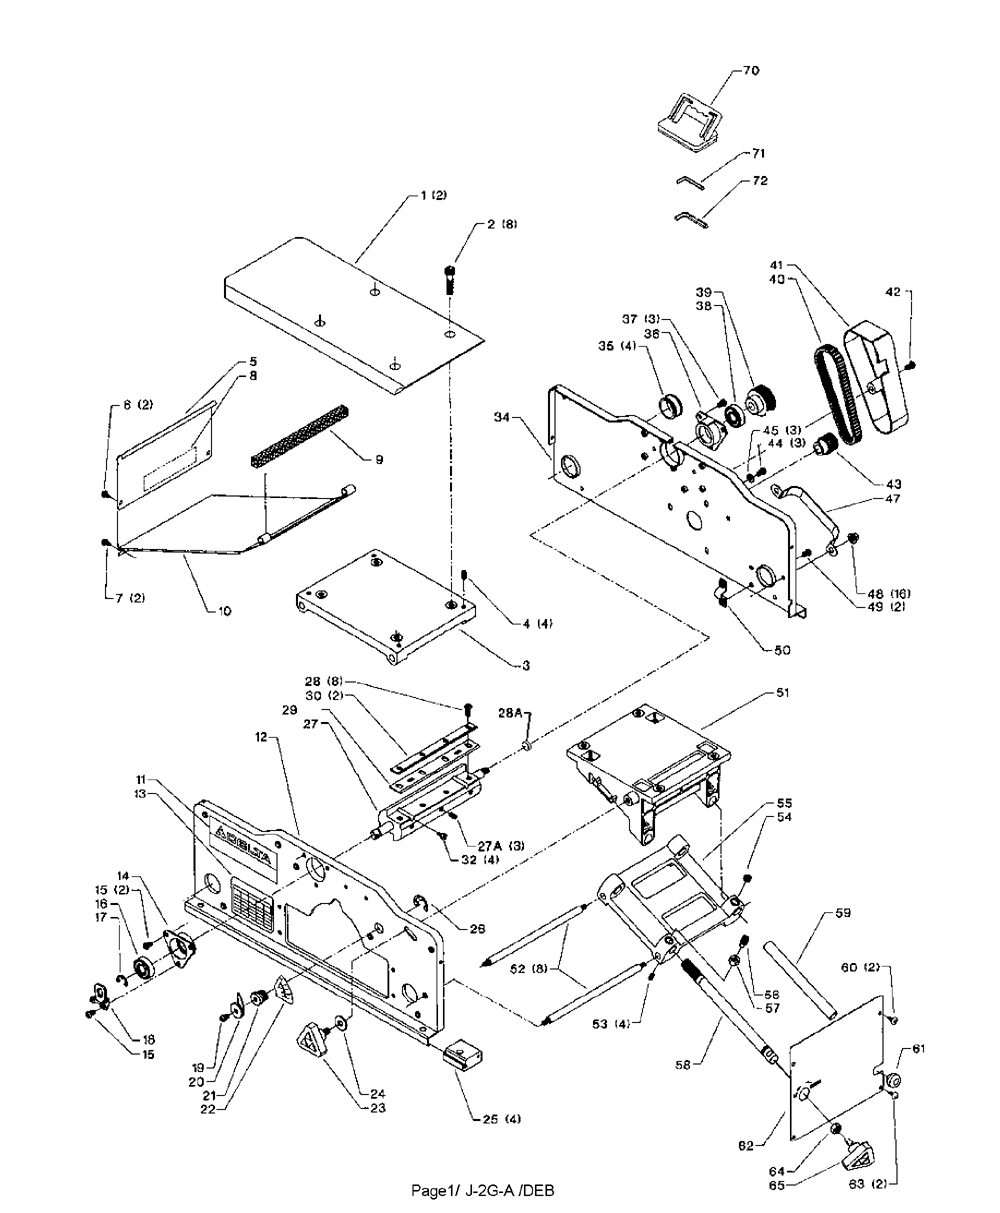 Delta Jointer Wiring Diagram Electrical Diagrams Wye Motor Jt160 Type 1 Parts List Repair Control